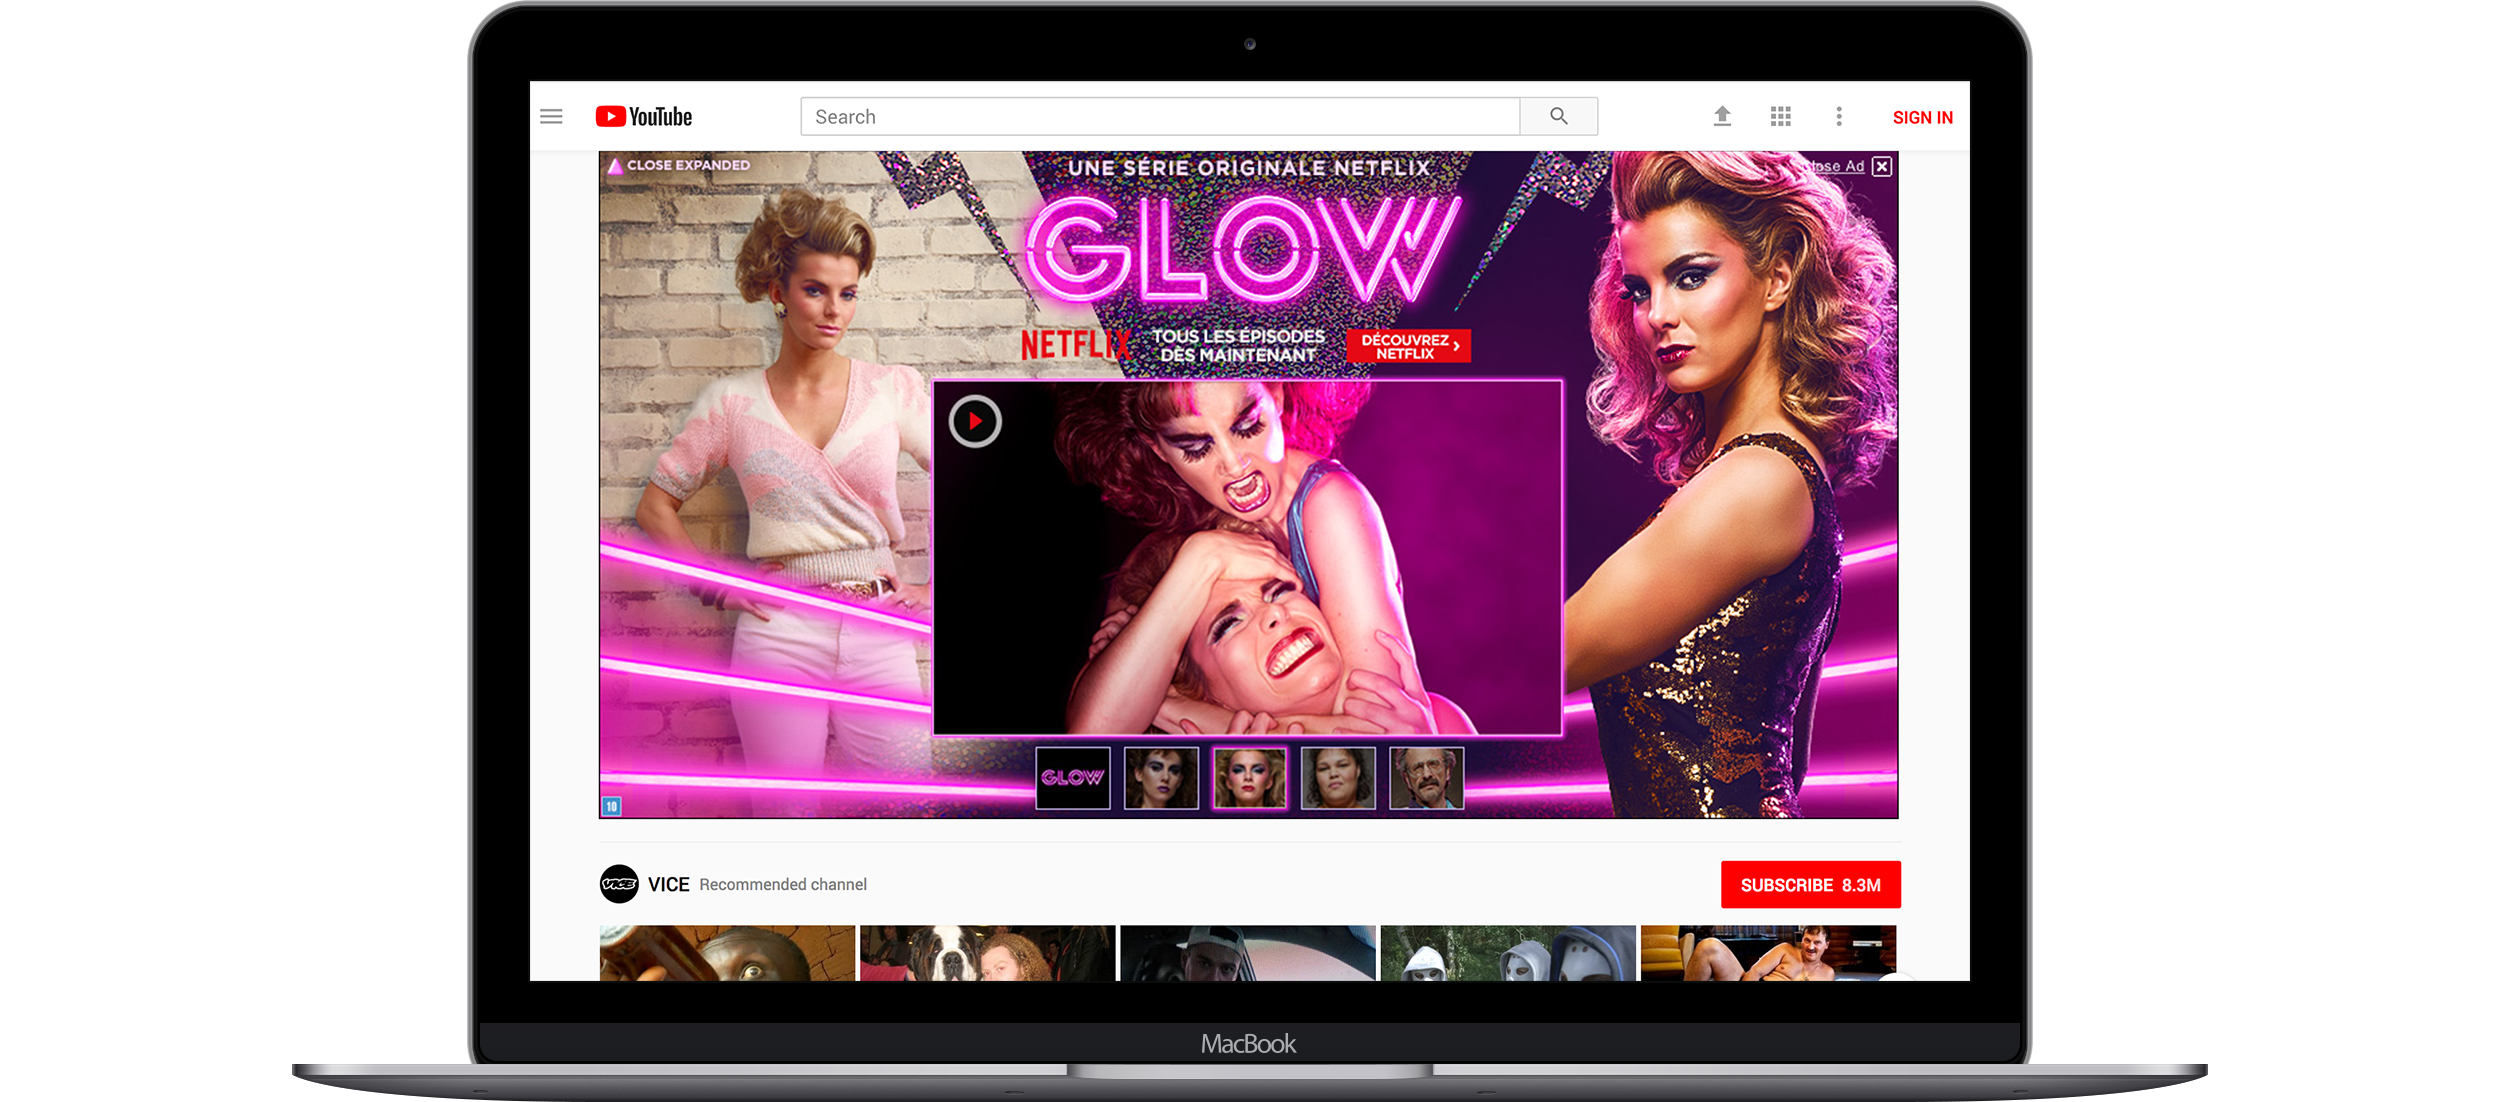 GLOW_YT_MASTHEAD_Expanded03.png